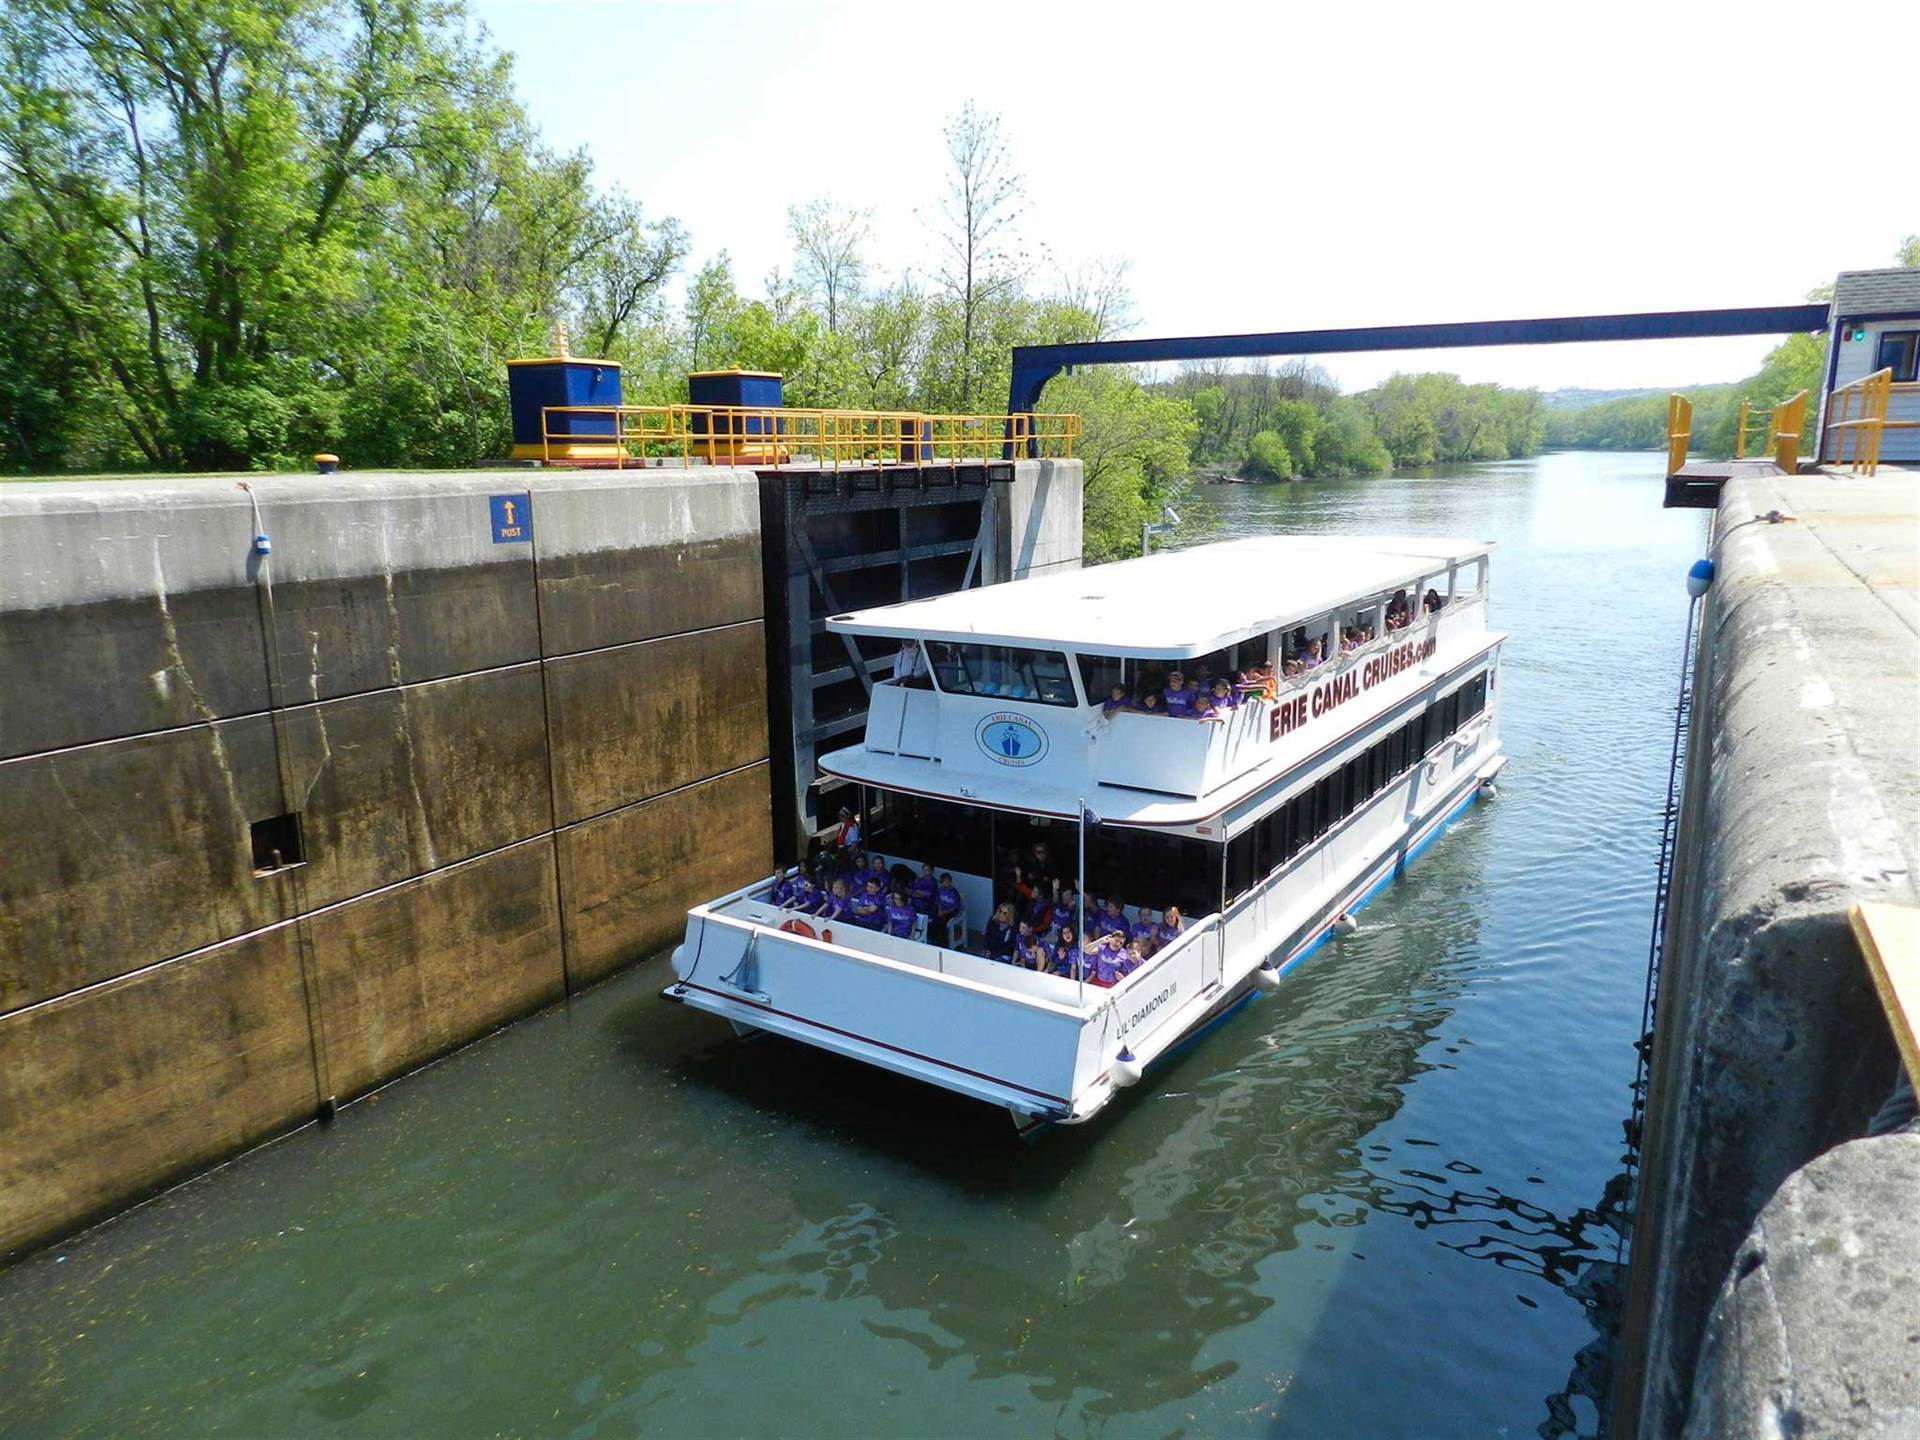 Erie Canal Cruise boat in lock